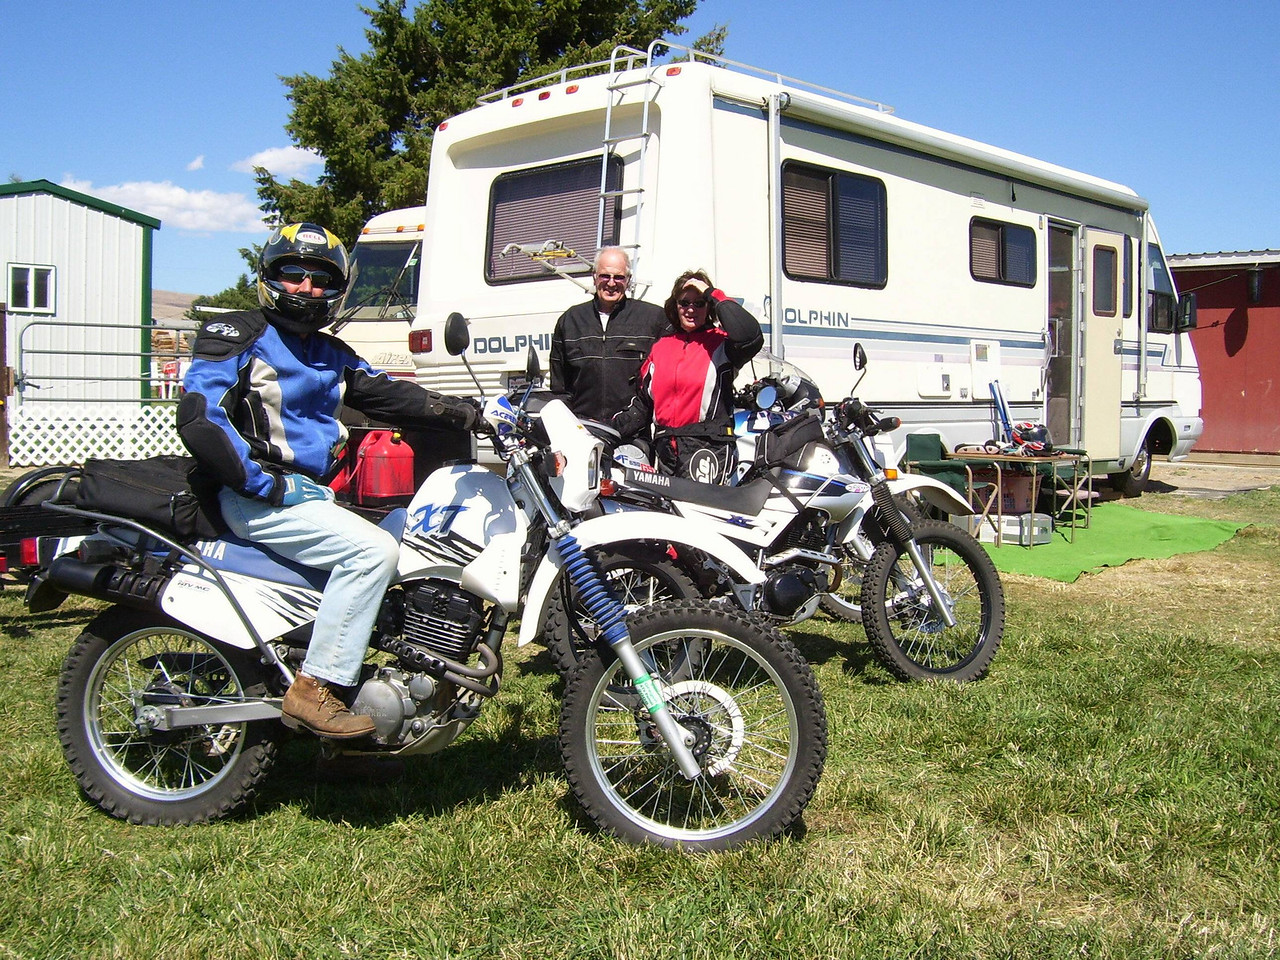 Camping at Nancy's for the float trip. We took my tennis doubles partner, Doug out for a Dual Sport ride.